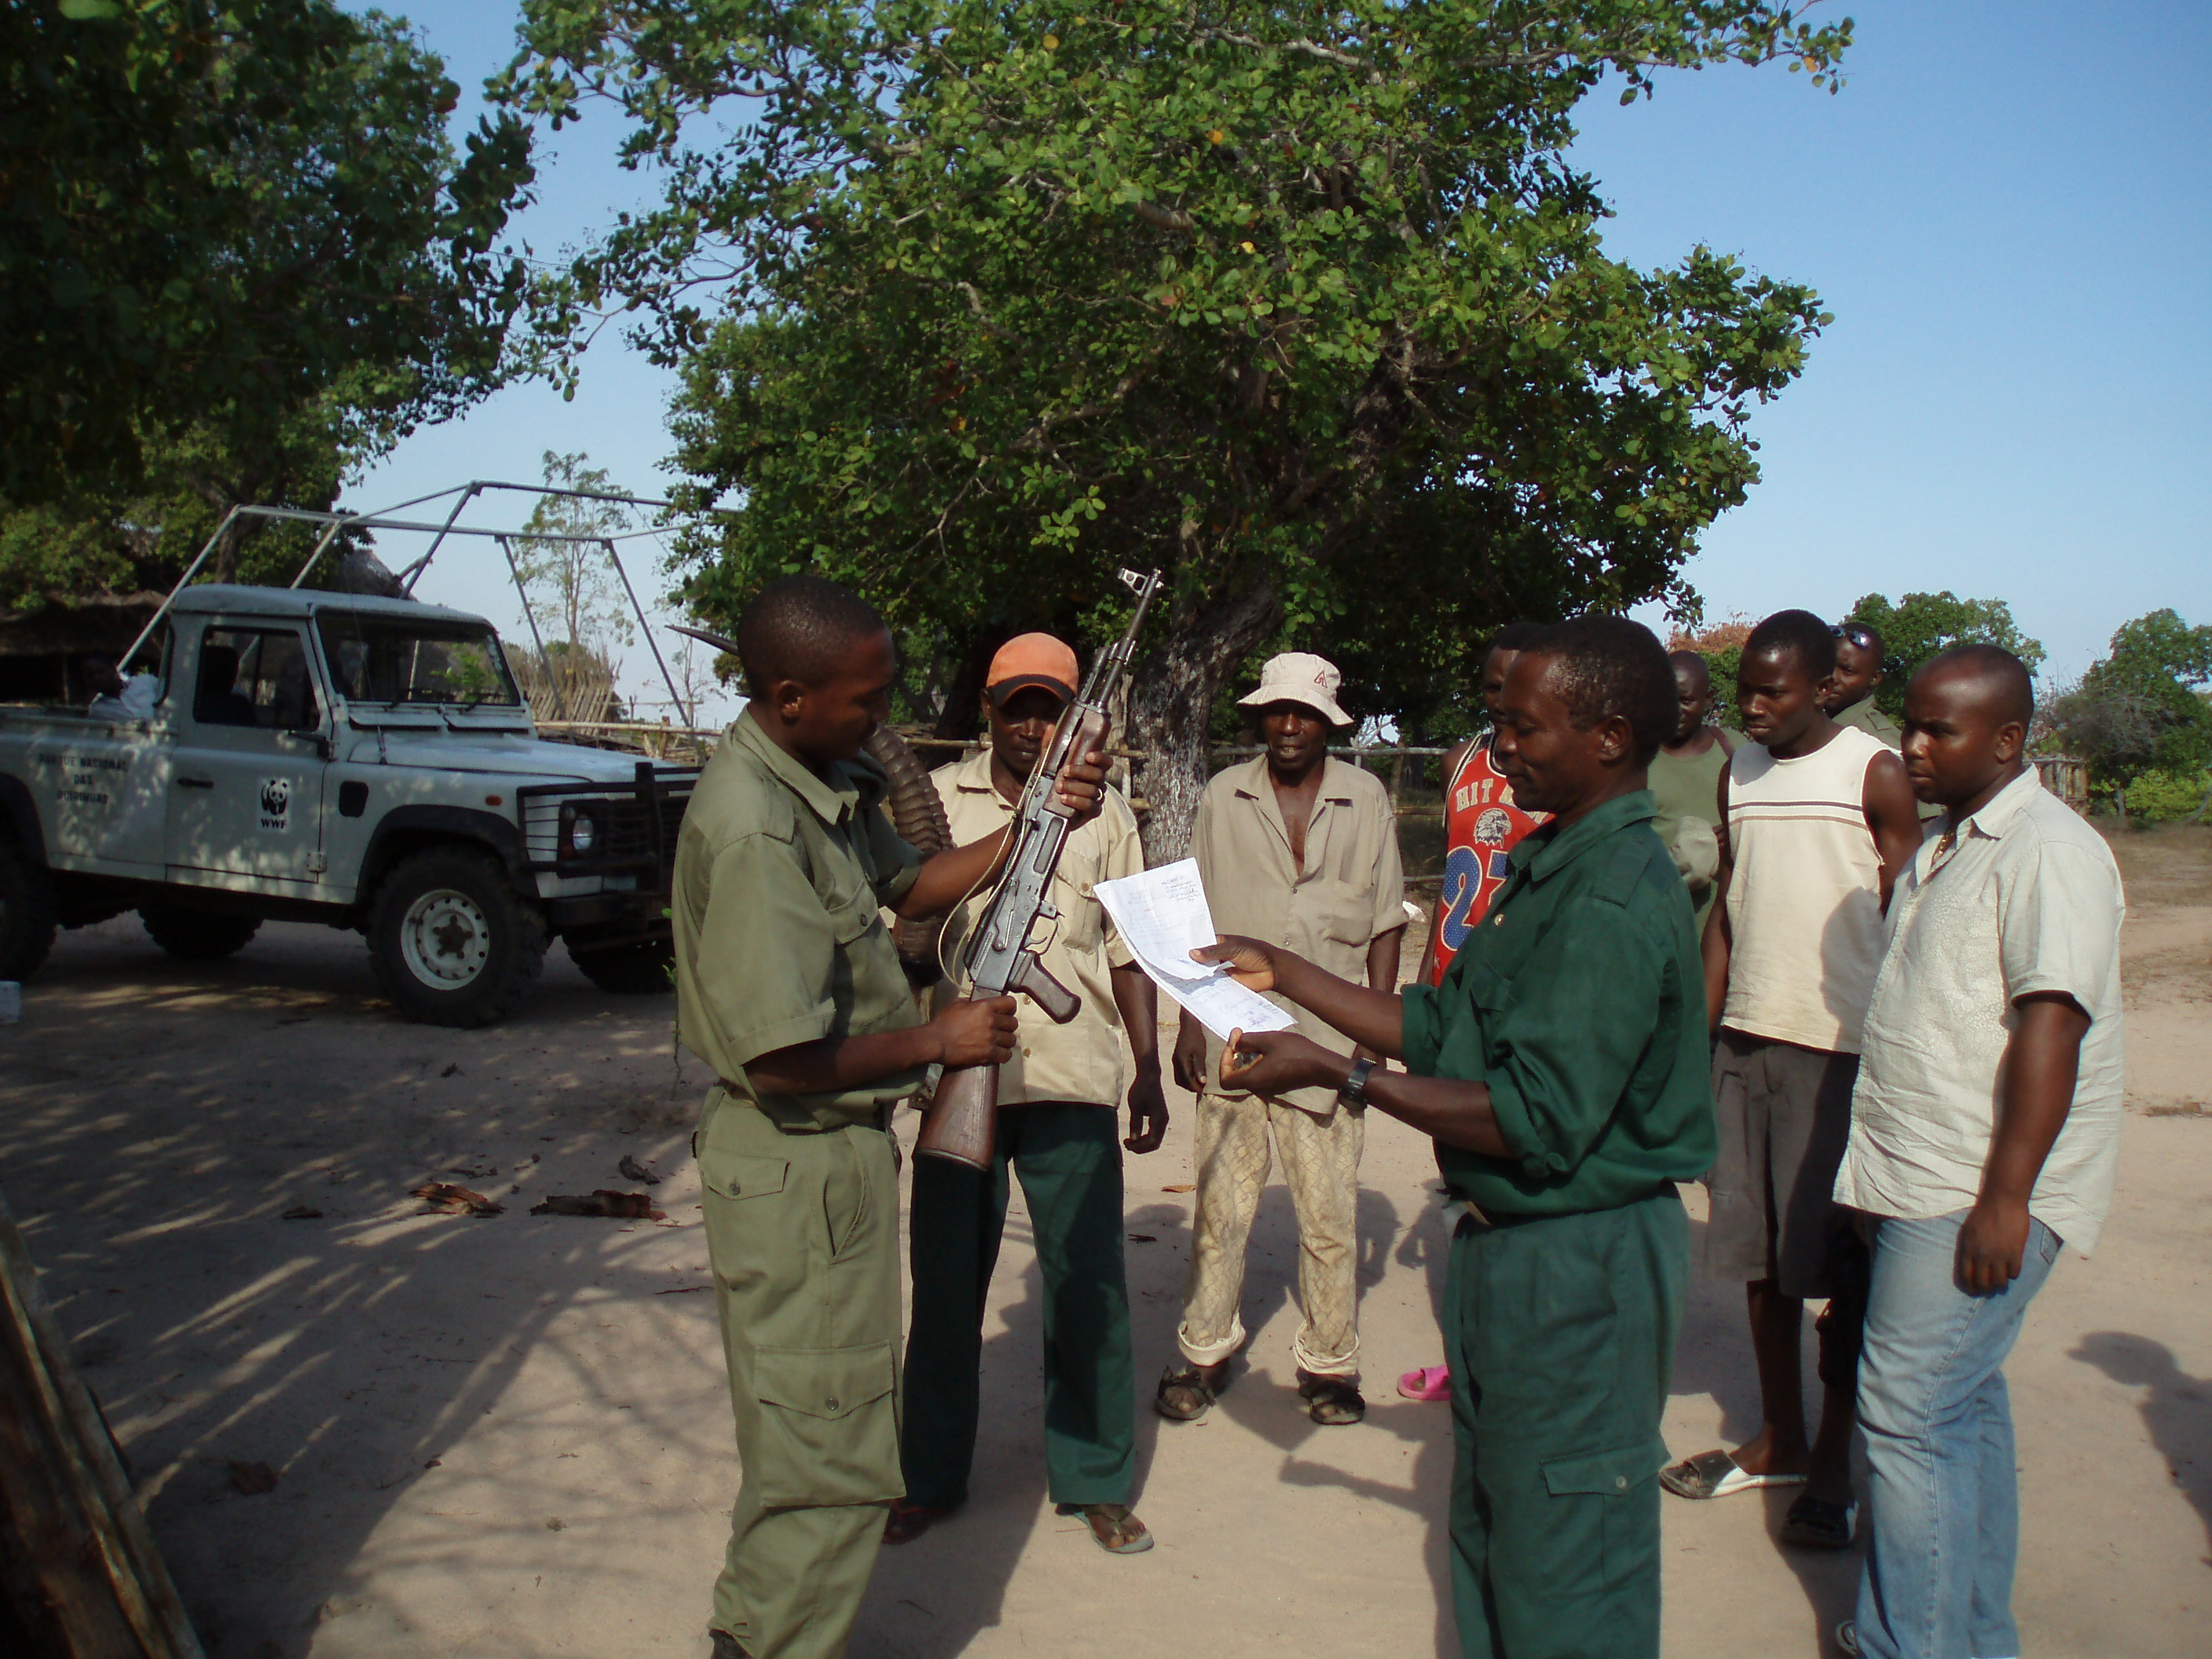 Automatic weapon captured by Mareja Community Rangers officially handed over to the chief park ranger